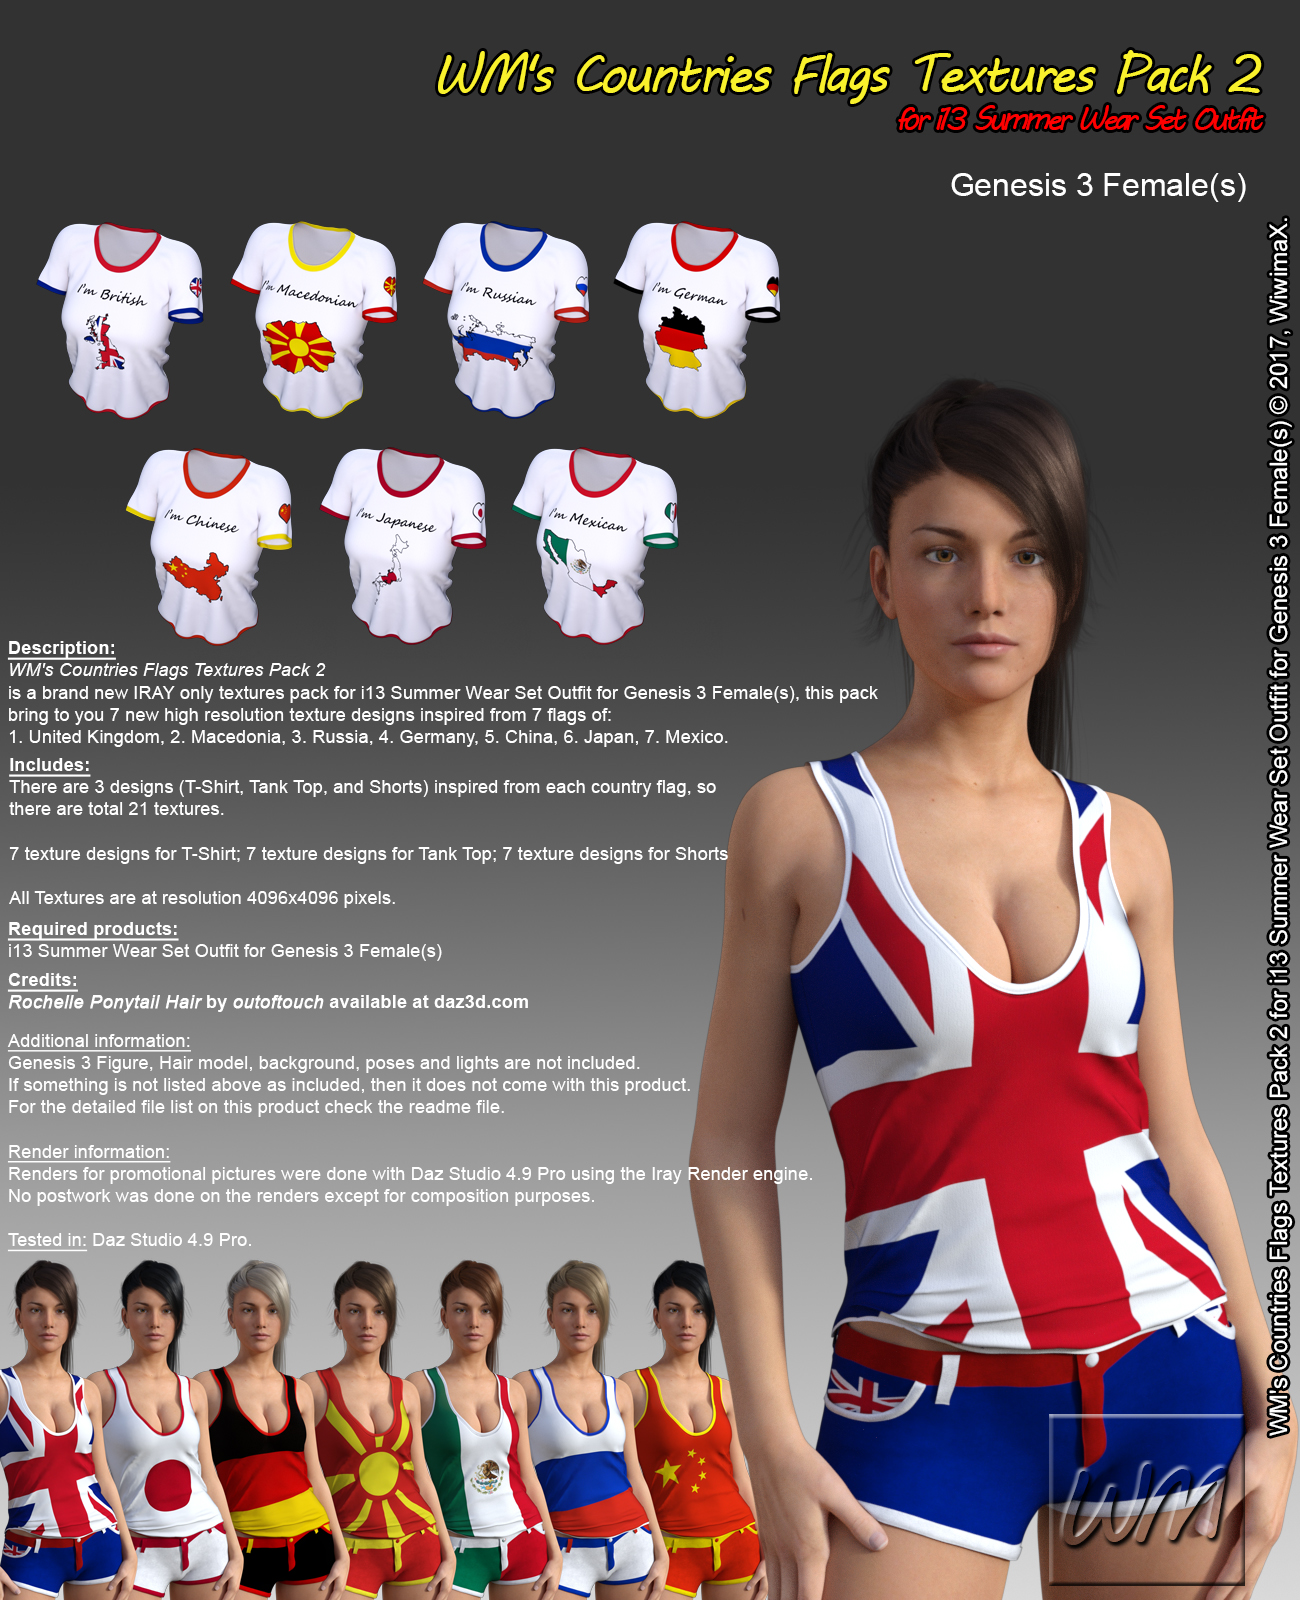 WM's Countries Flags Textures Pack 2 for i13 Summer Wear Set Outfit